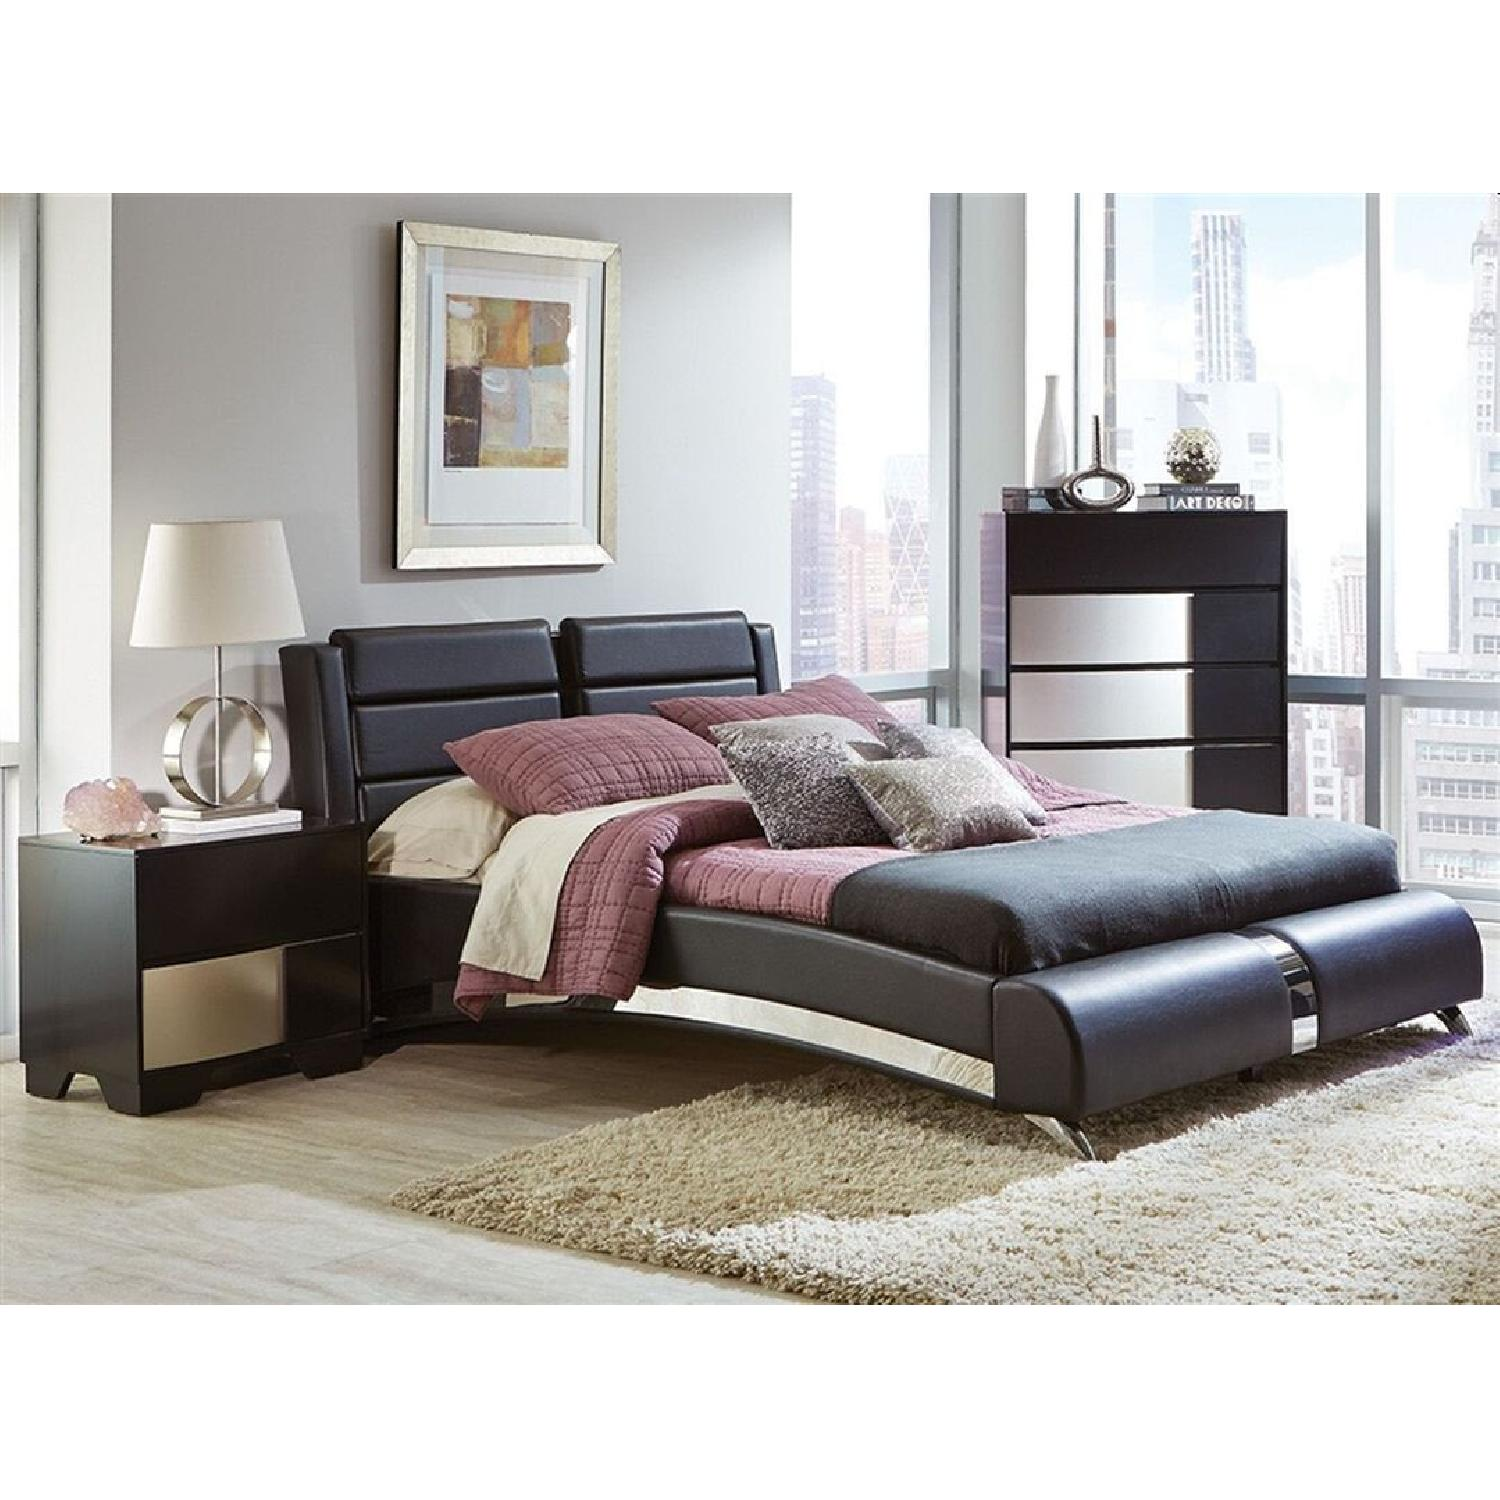 Queen Platform Bed In Black Leatherette w/ Chrome Accent - image-3